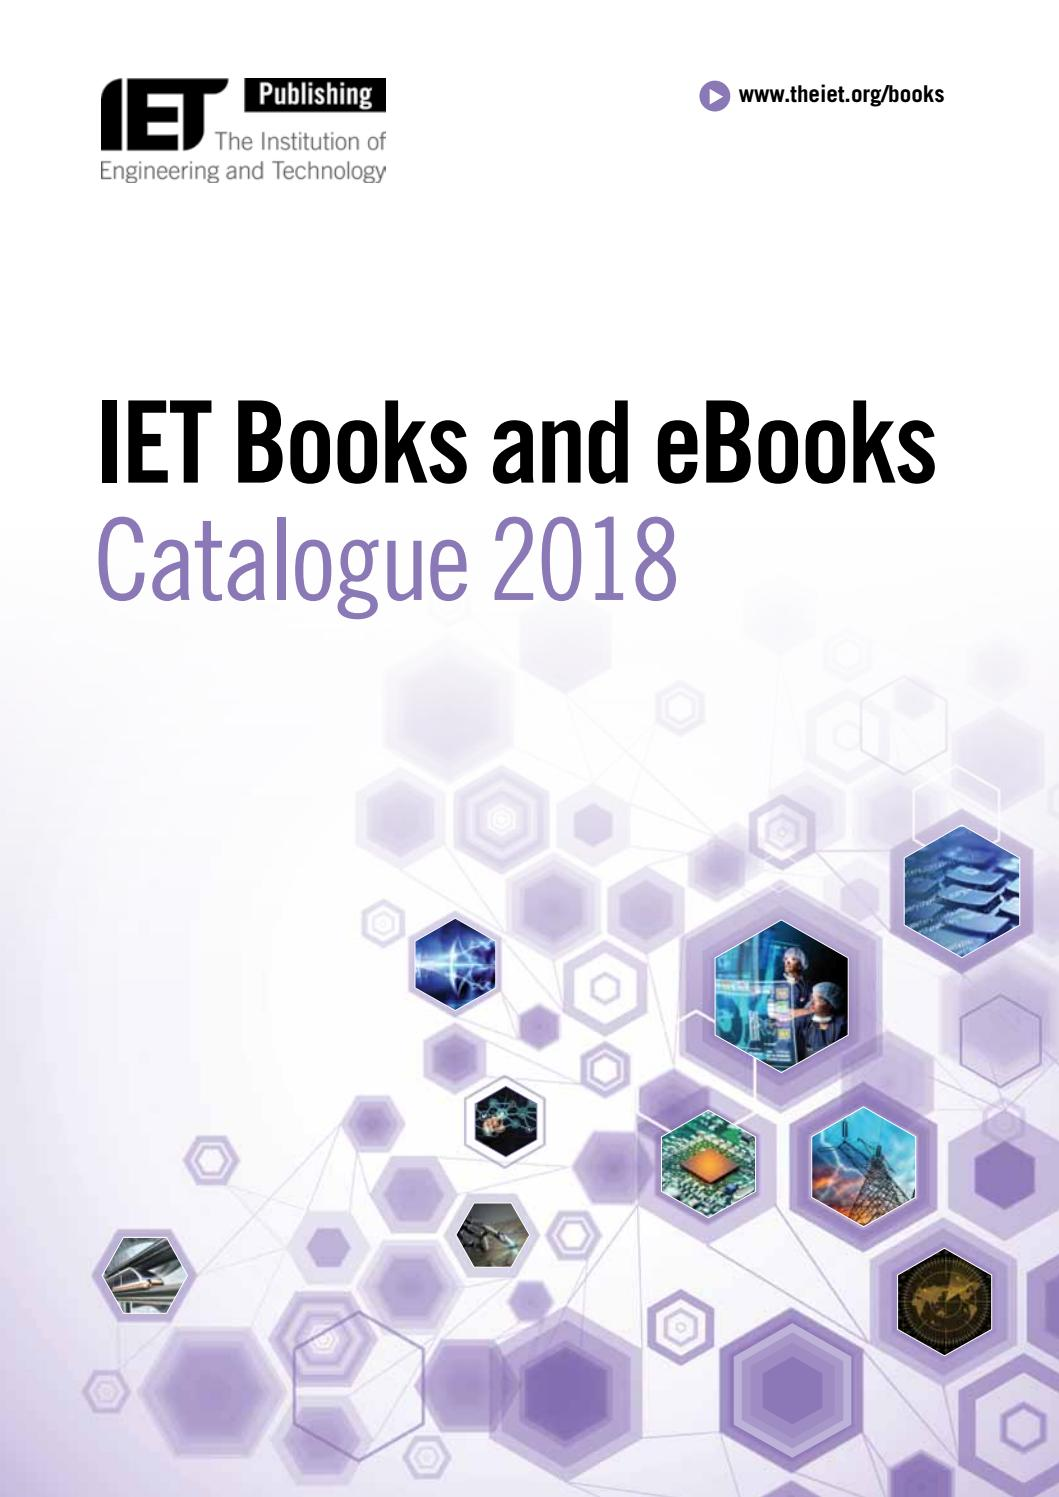 Iet books and ebooks catalogue 2018 by the institution of iet books and ebooks catalogue 2018 by the institution of engineering and technology academic publishing issuu fandeluxe Gallery